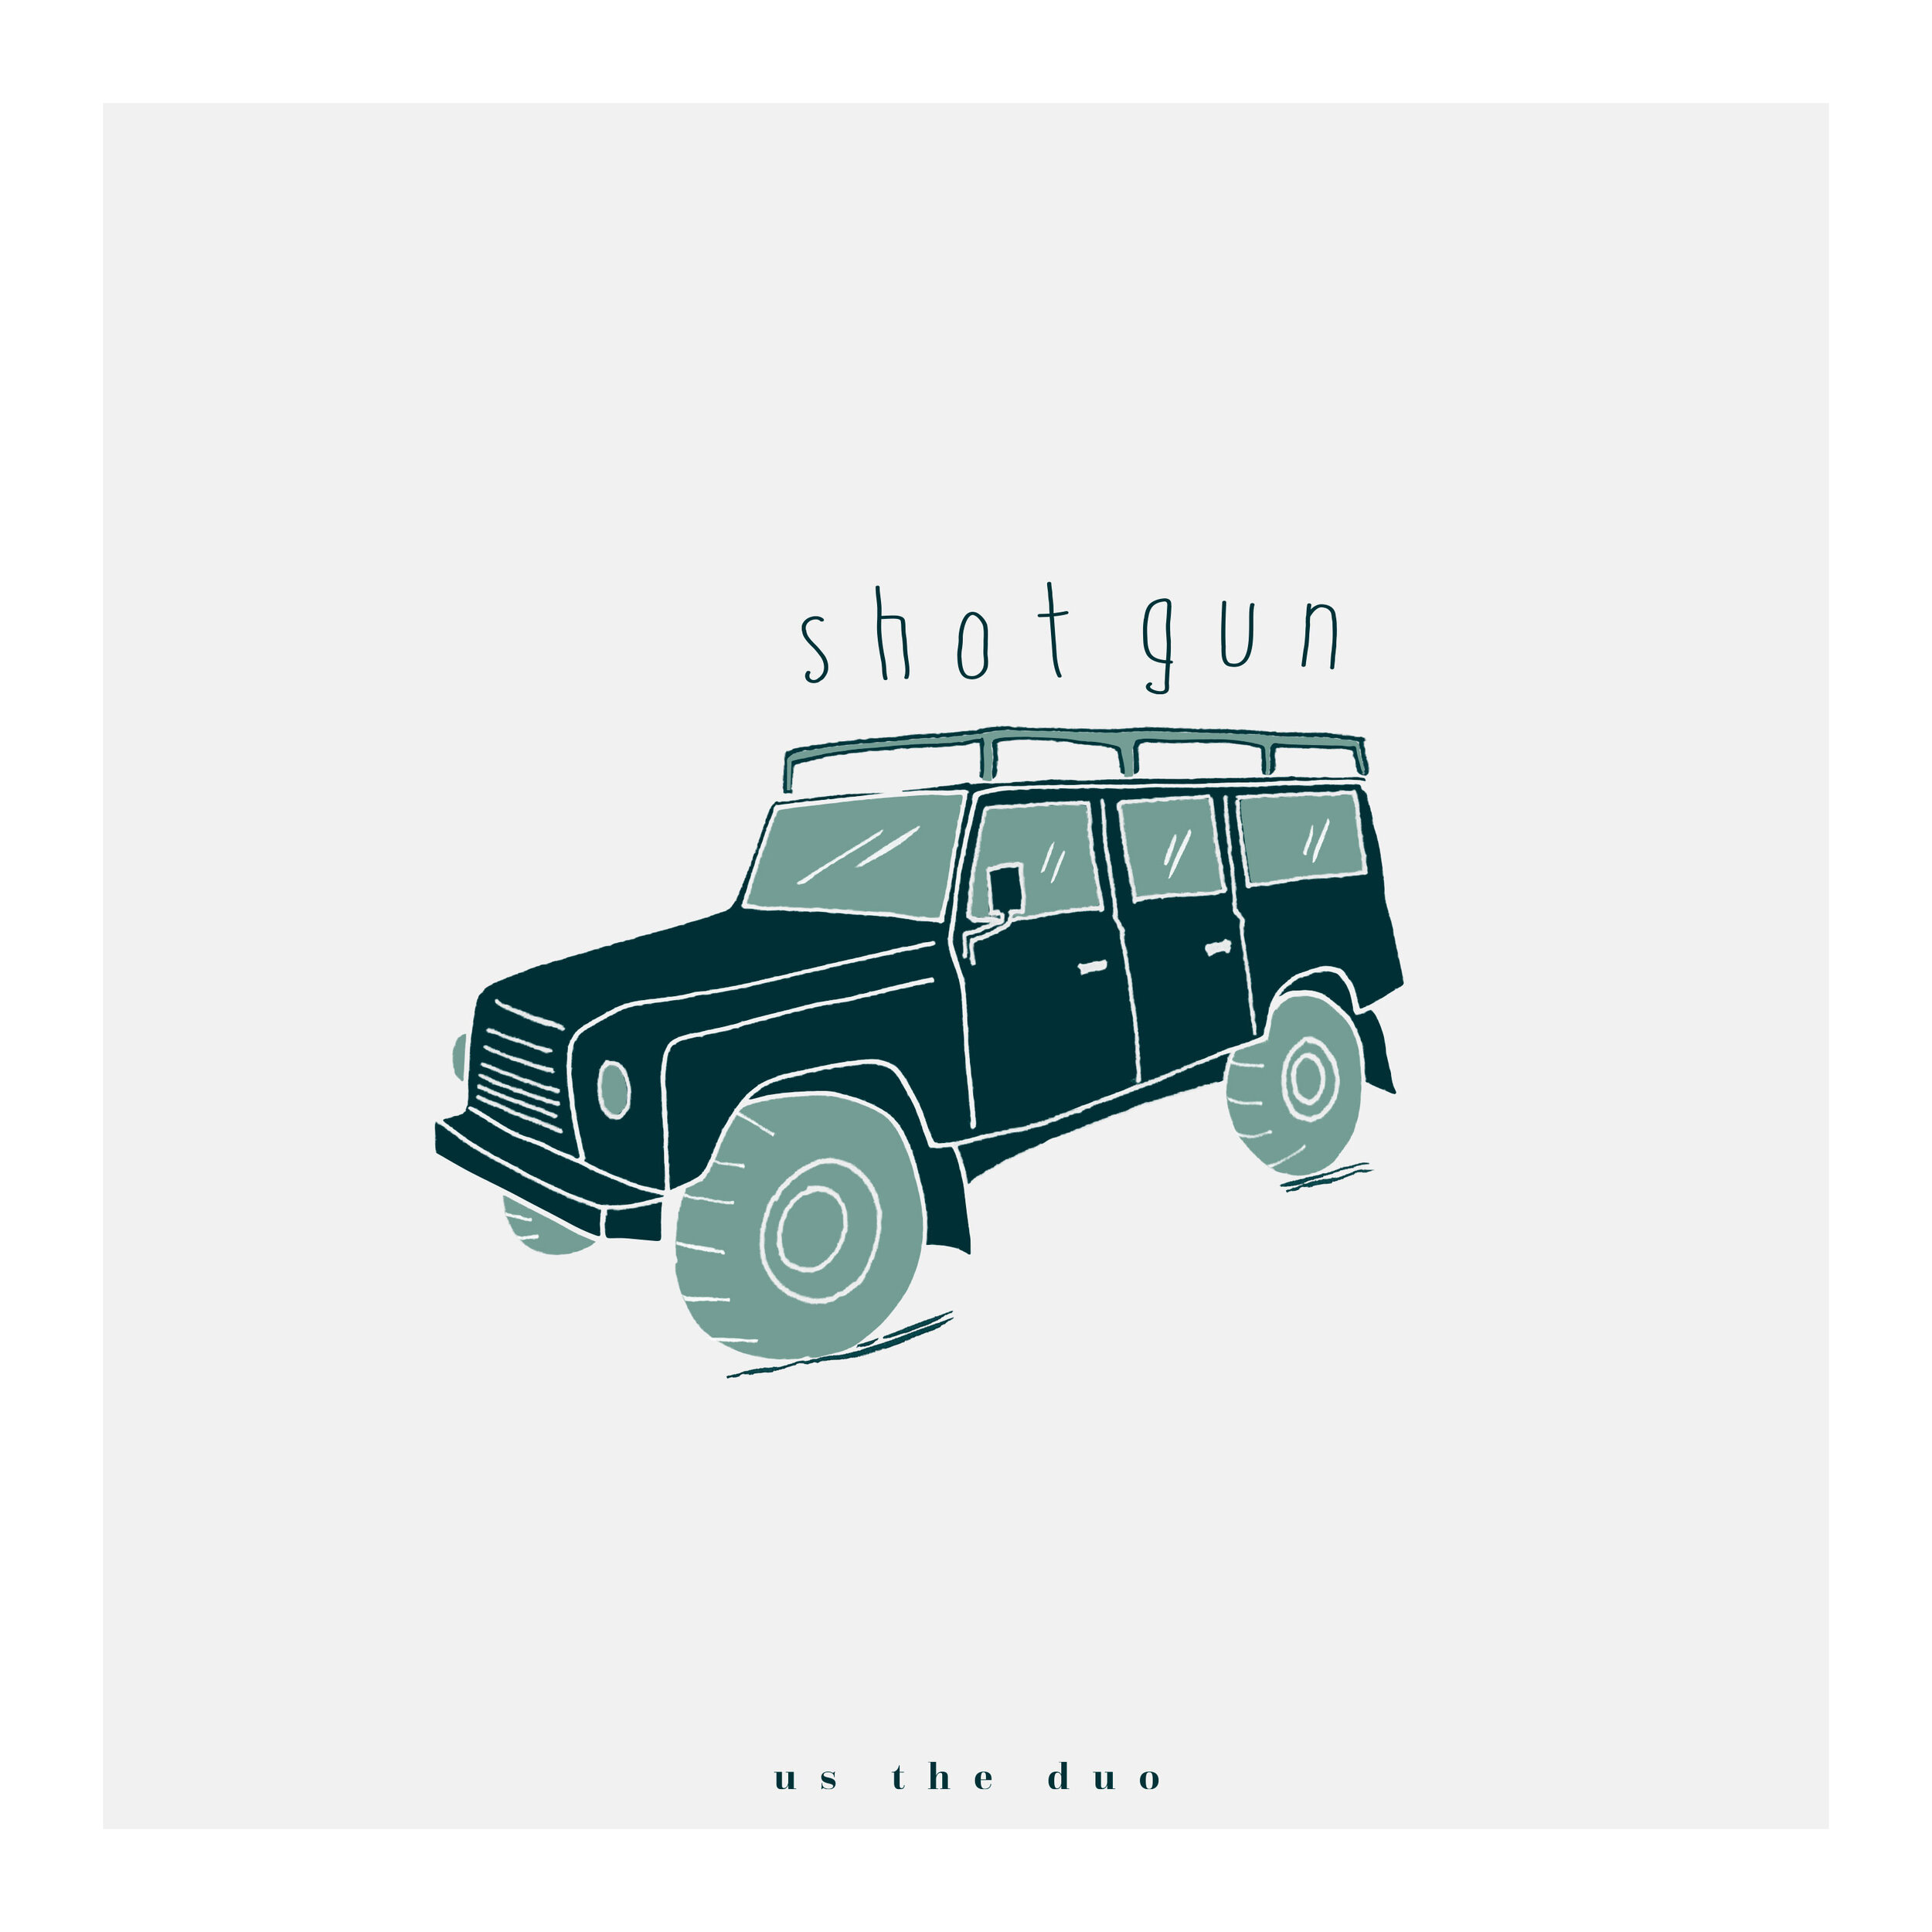 Shotgun (Final Album Cover) Us The Duo.jpg